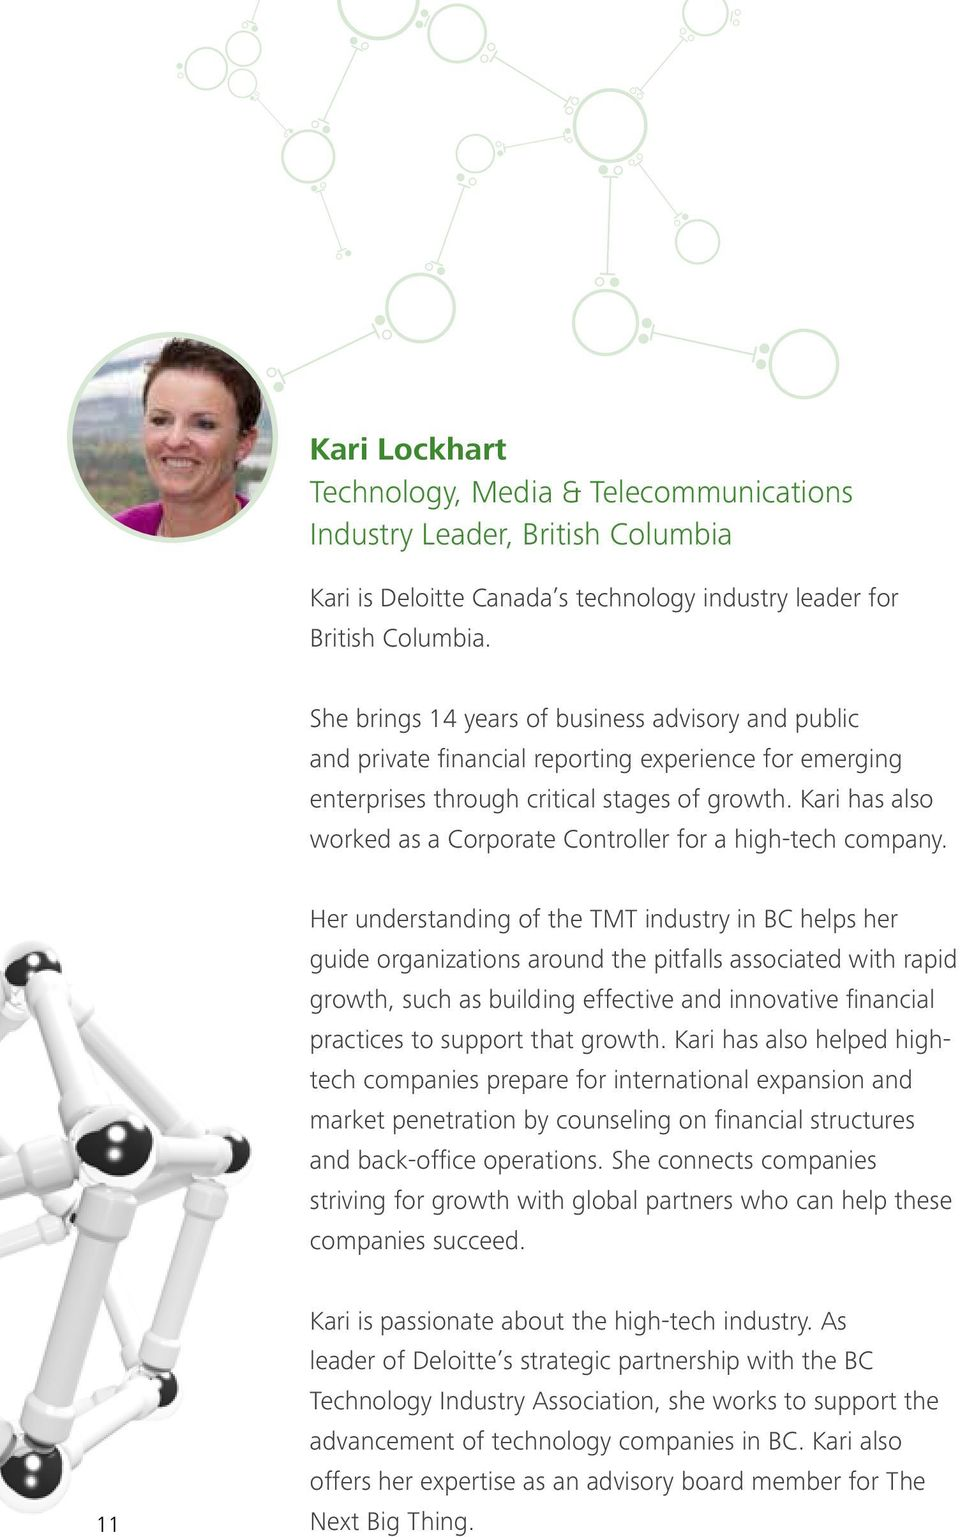 Kari has also worked as a Corporate Controller for a high-tech company.